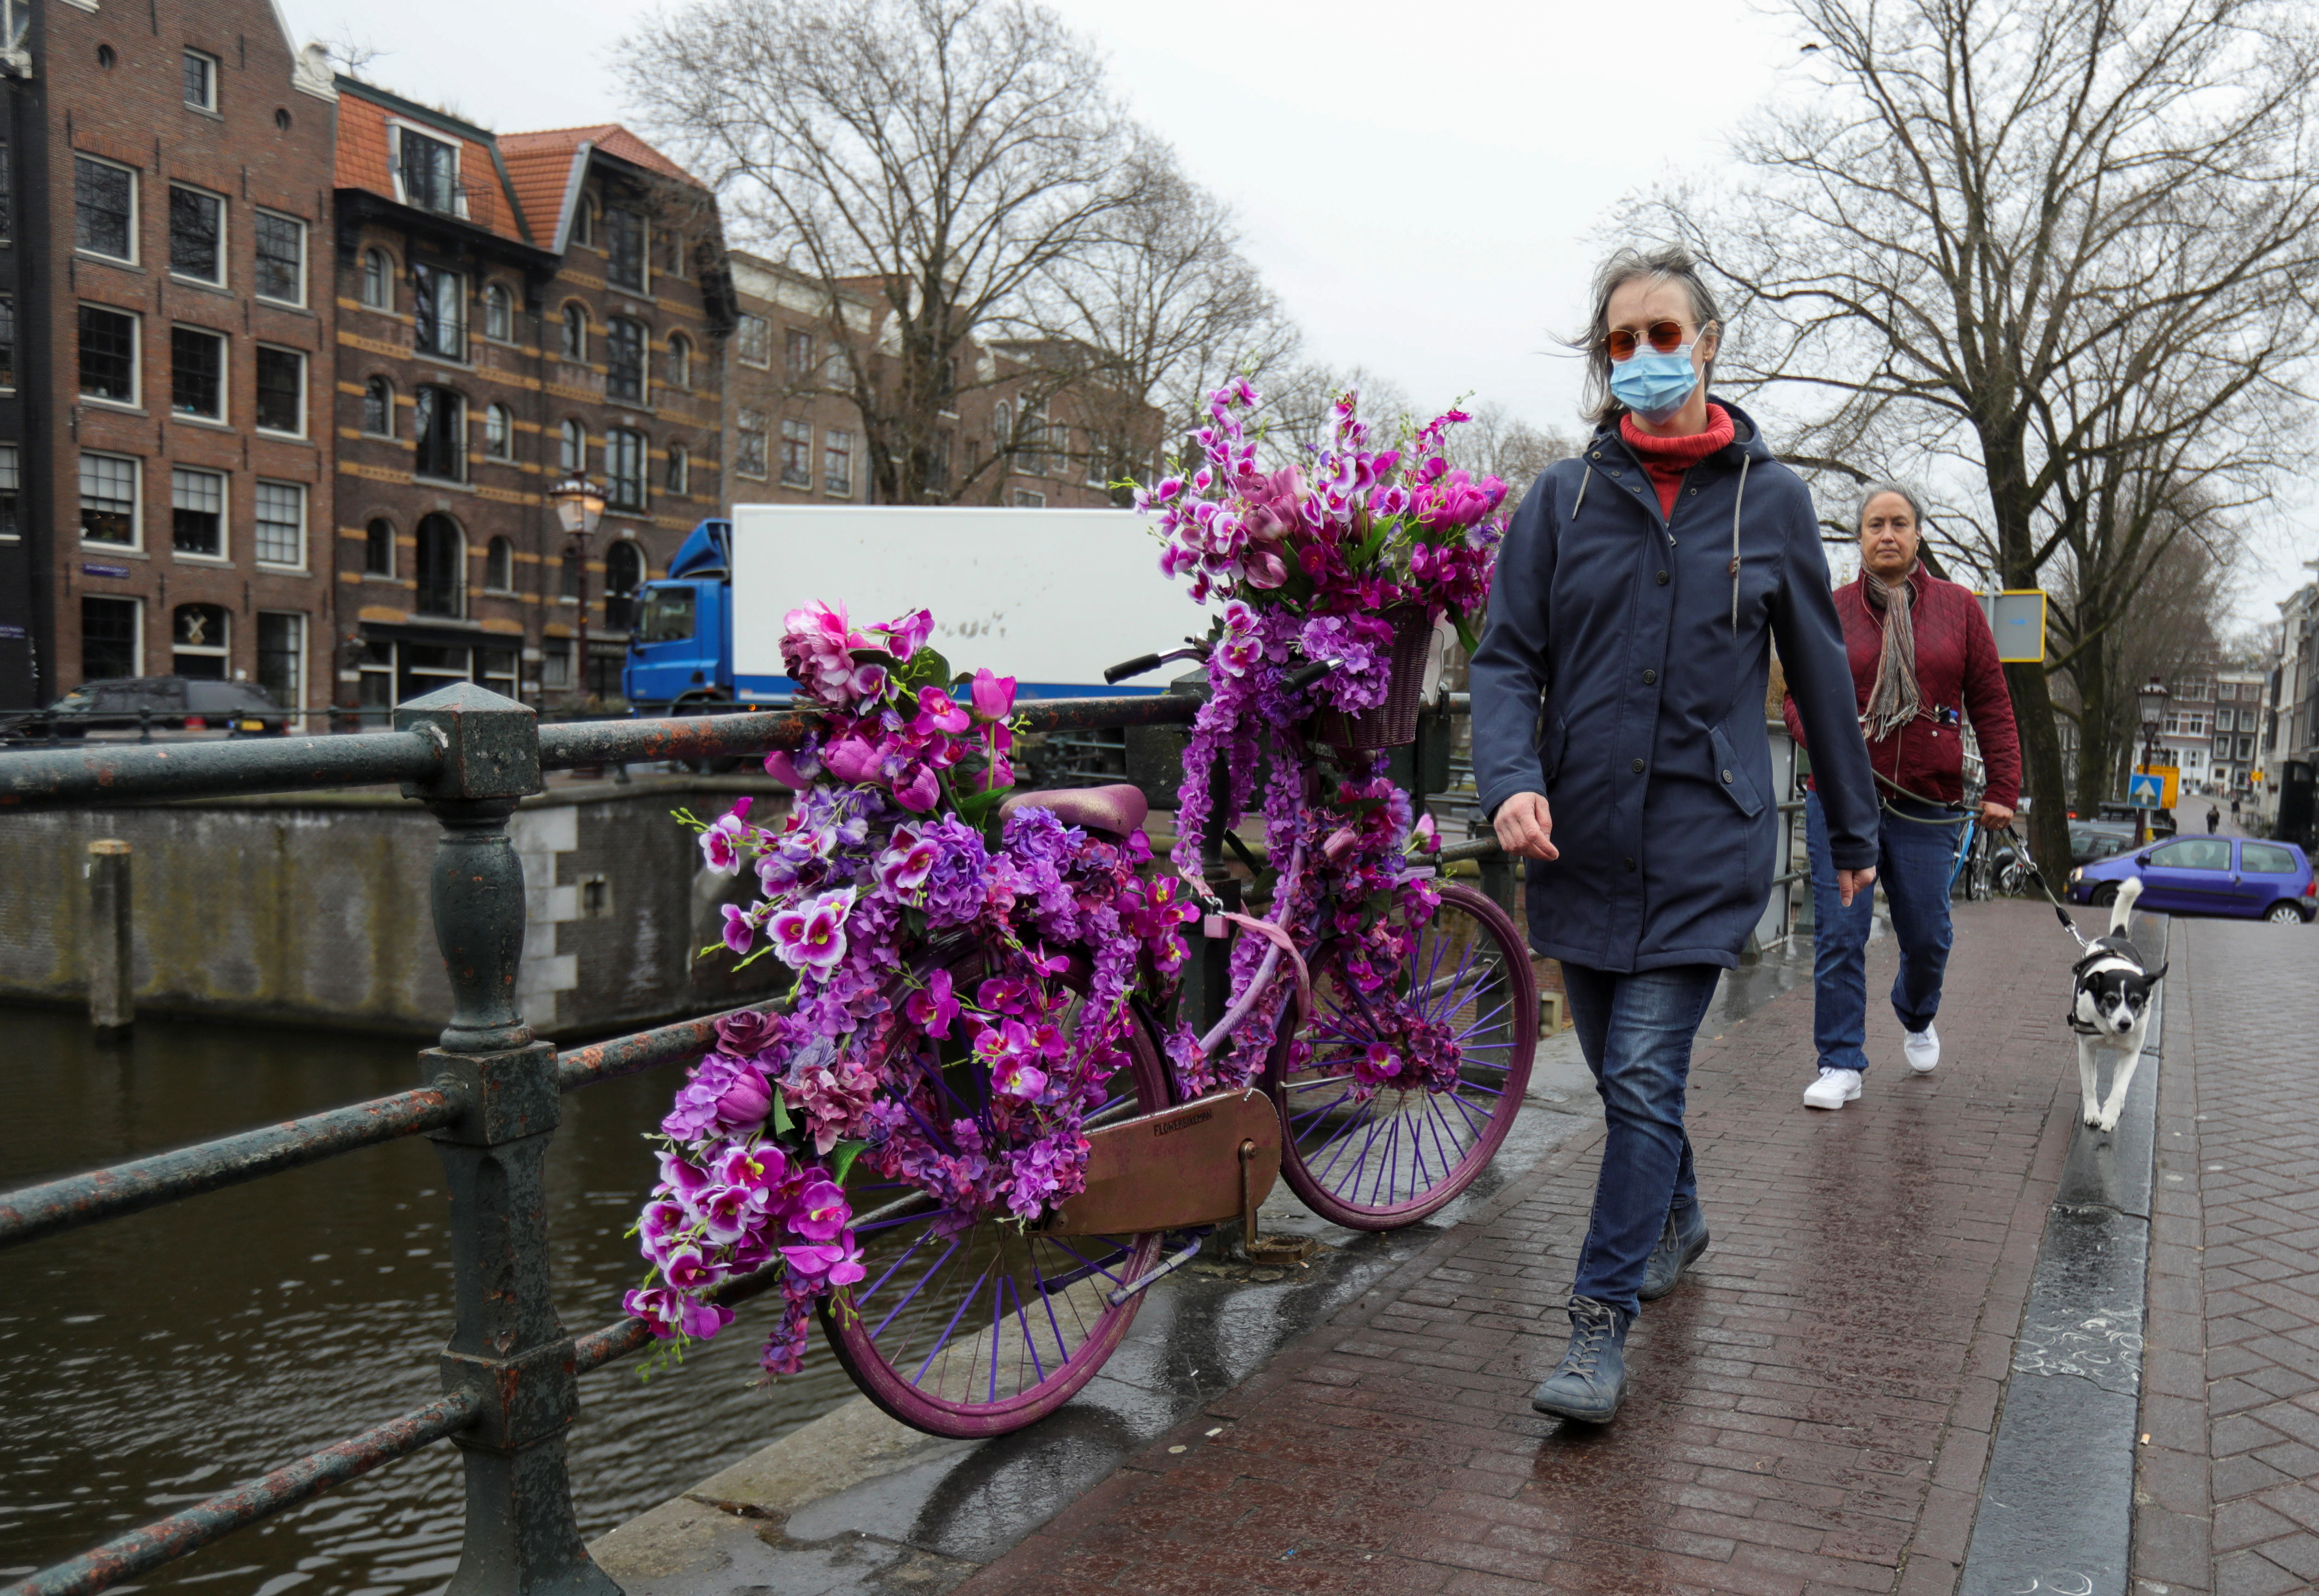 People walk past a bike with flowers at the Prinsengracht in Amsterdam, Netherlands March 10, 2021. Picture taken March 10, 2021. REUTERS/Eva Plevier